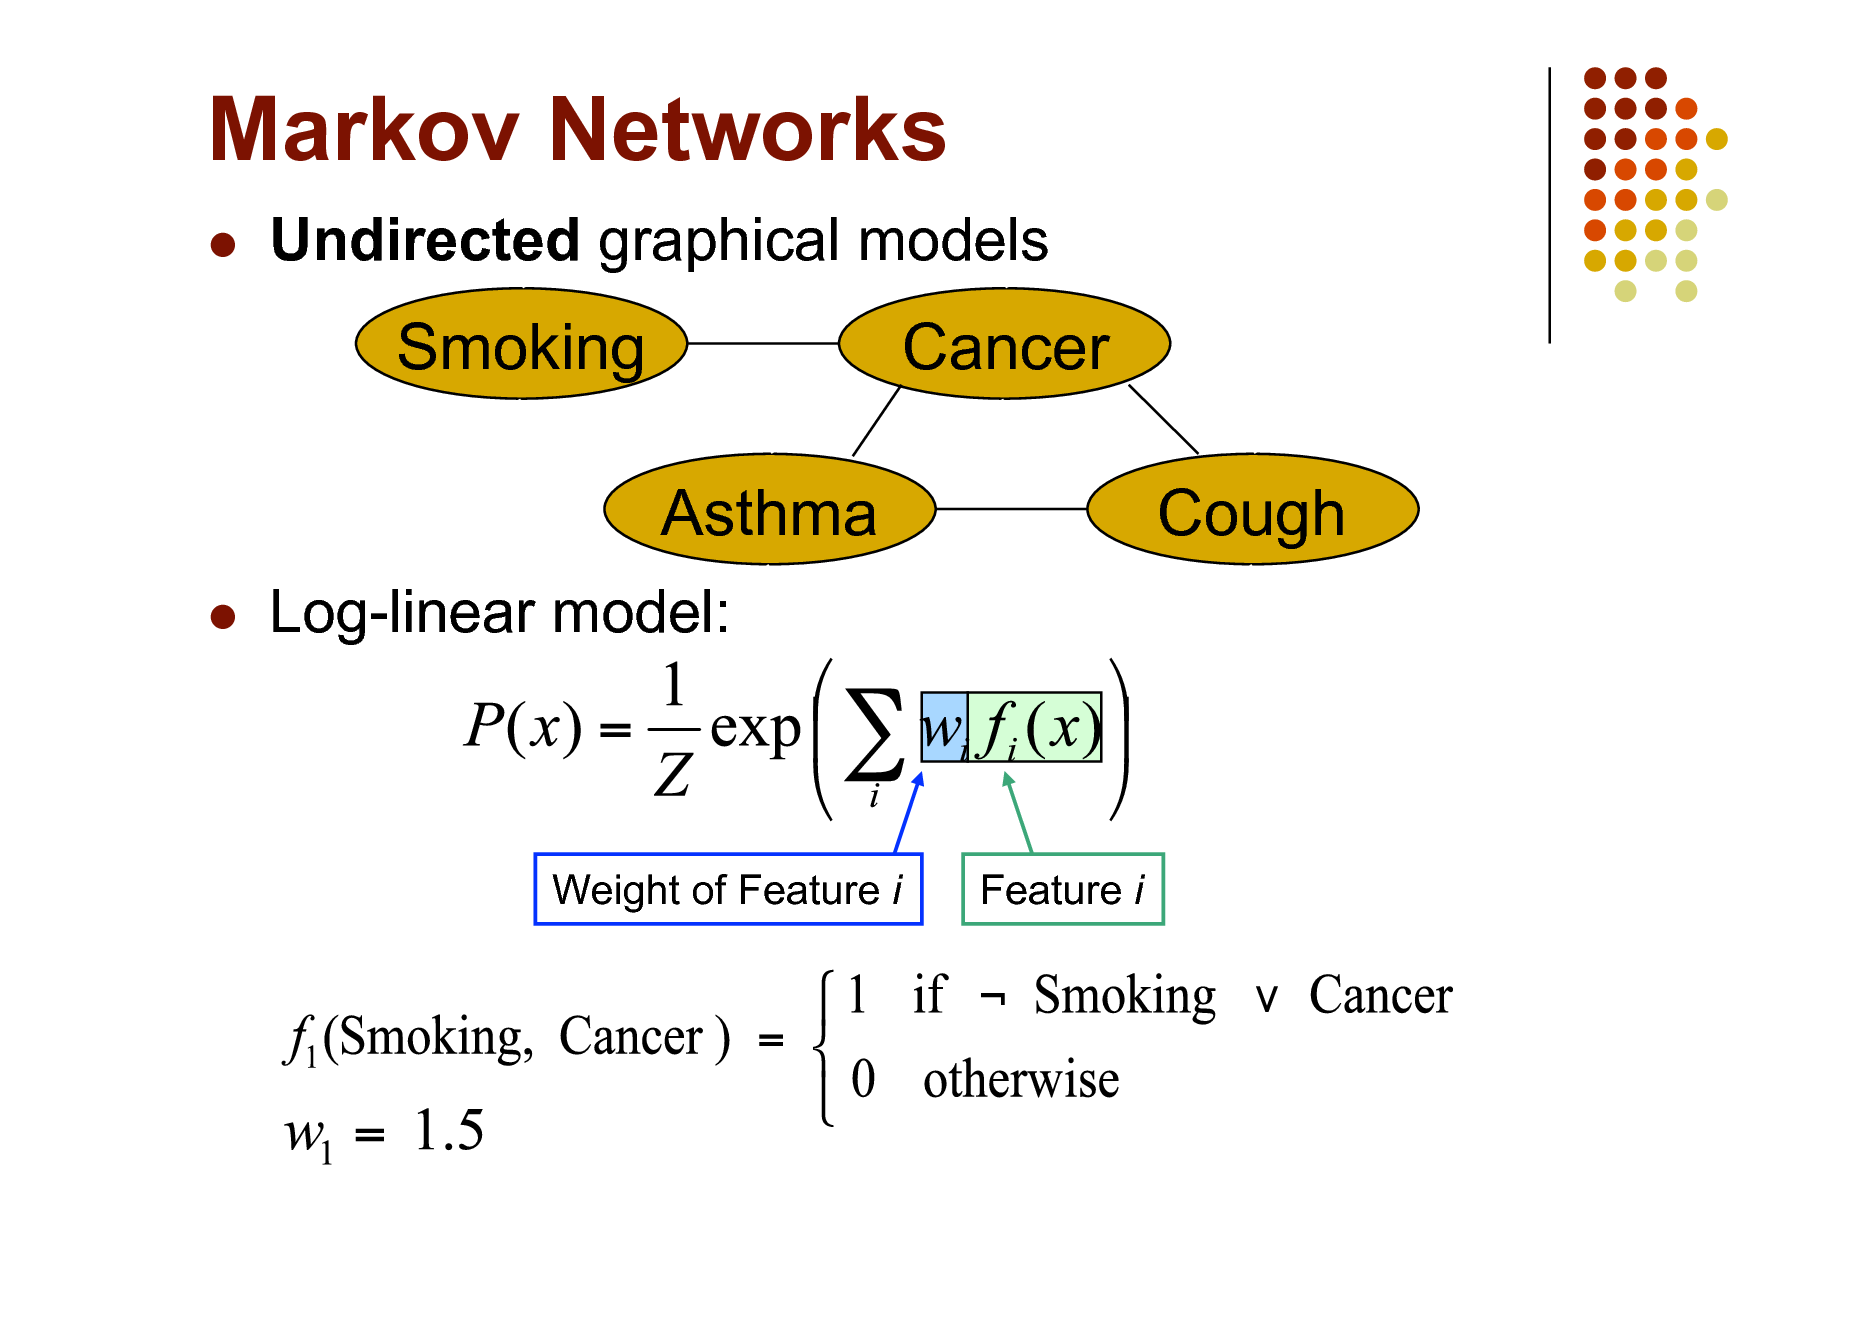 Slide: Markov Networks   Undirected graphical models  Smoking Asthma   Cancer Cough  Log-linear model:  Weight of Feature i  Feature i